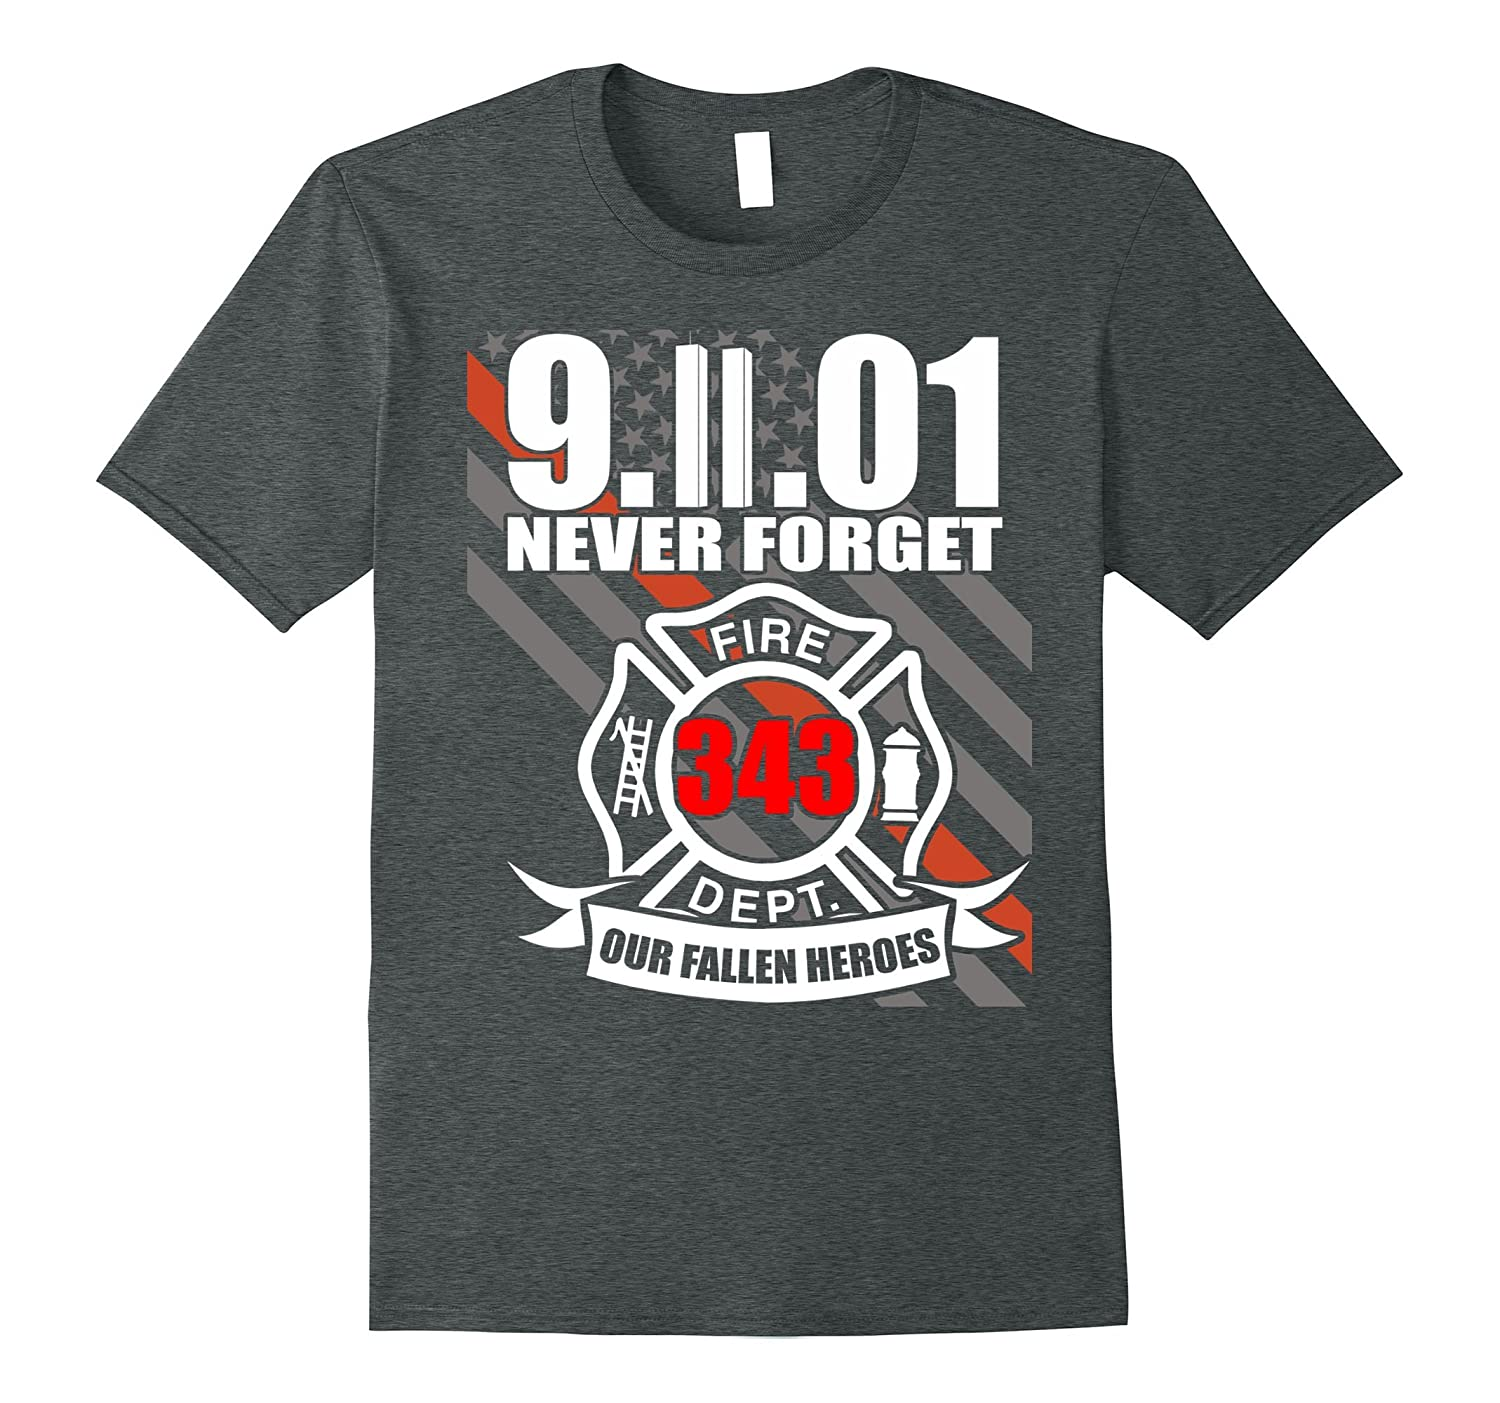 9.11.01 Never forget 343 heroes - Patriot memorial day-TH